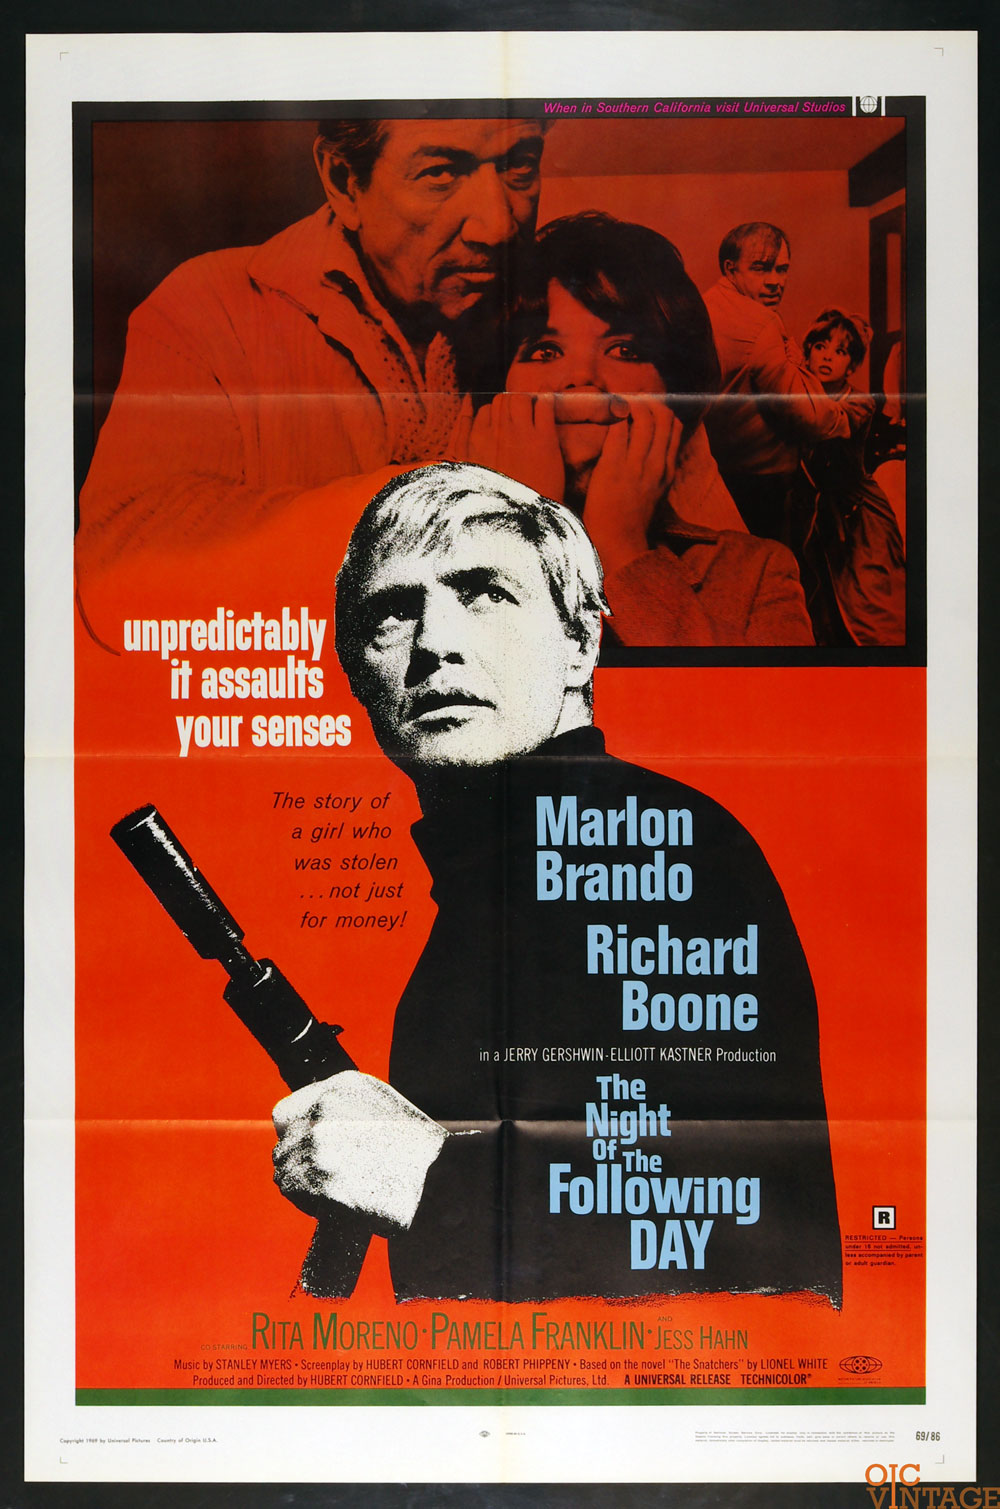 The Night of the Following Day Movie Poster 1969 Marlon Brando 27 x 41 1 sheet